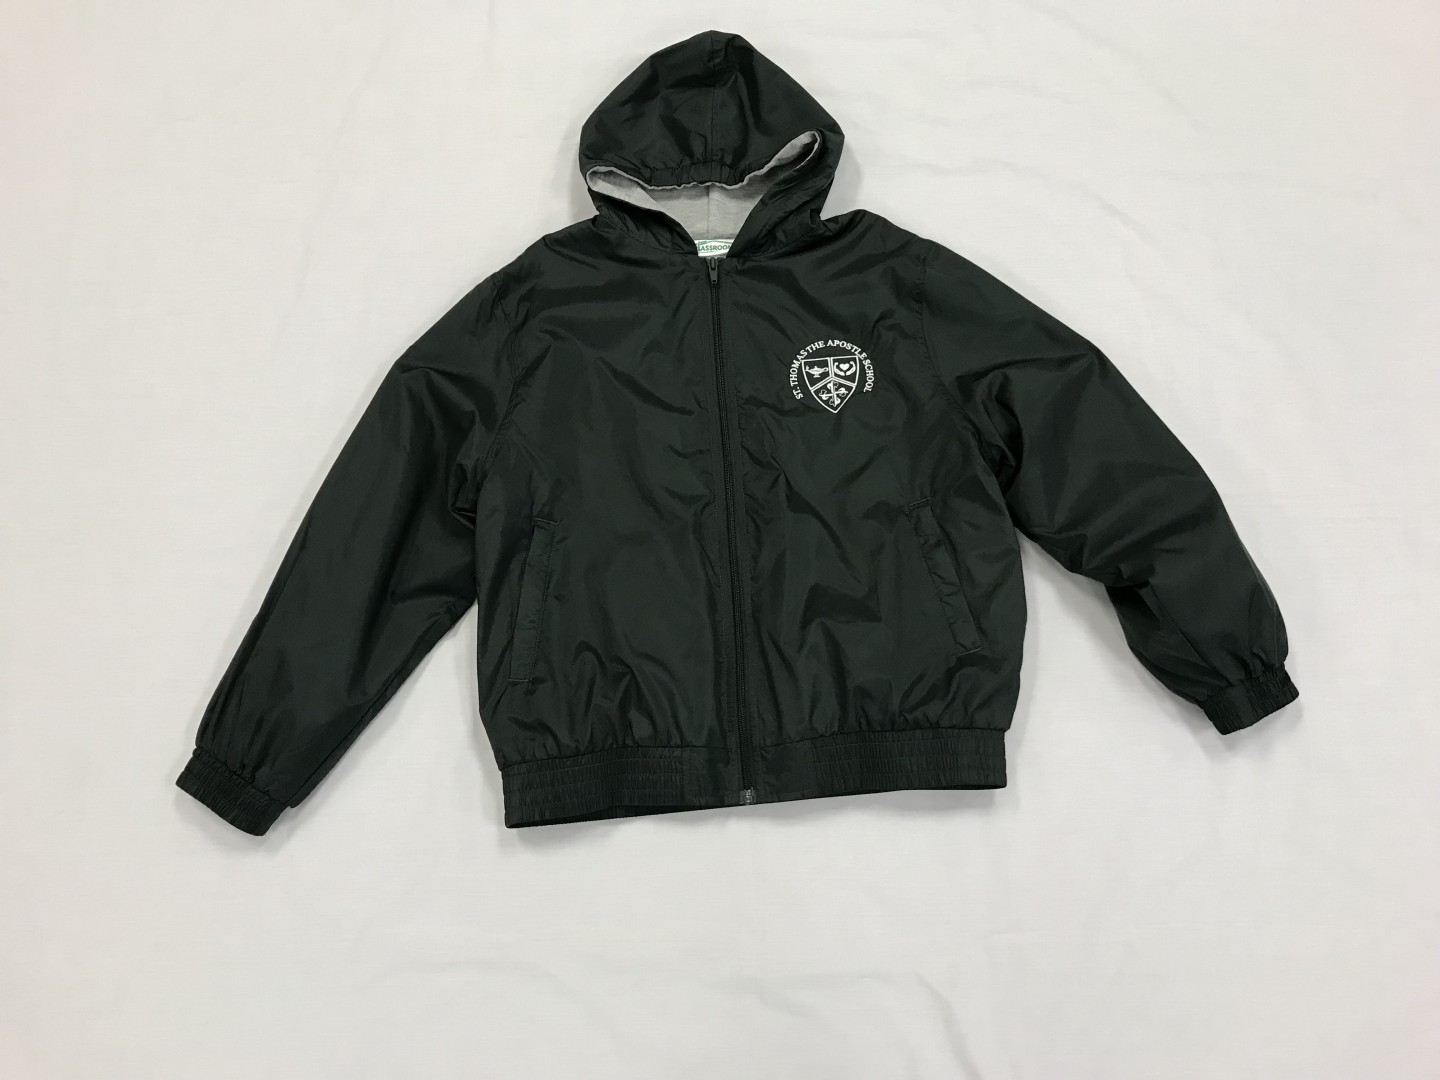 Fleece Lined Windbreaker with Hood